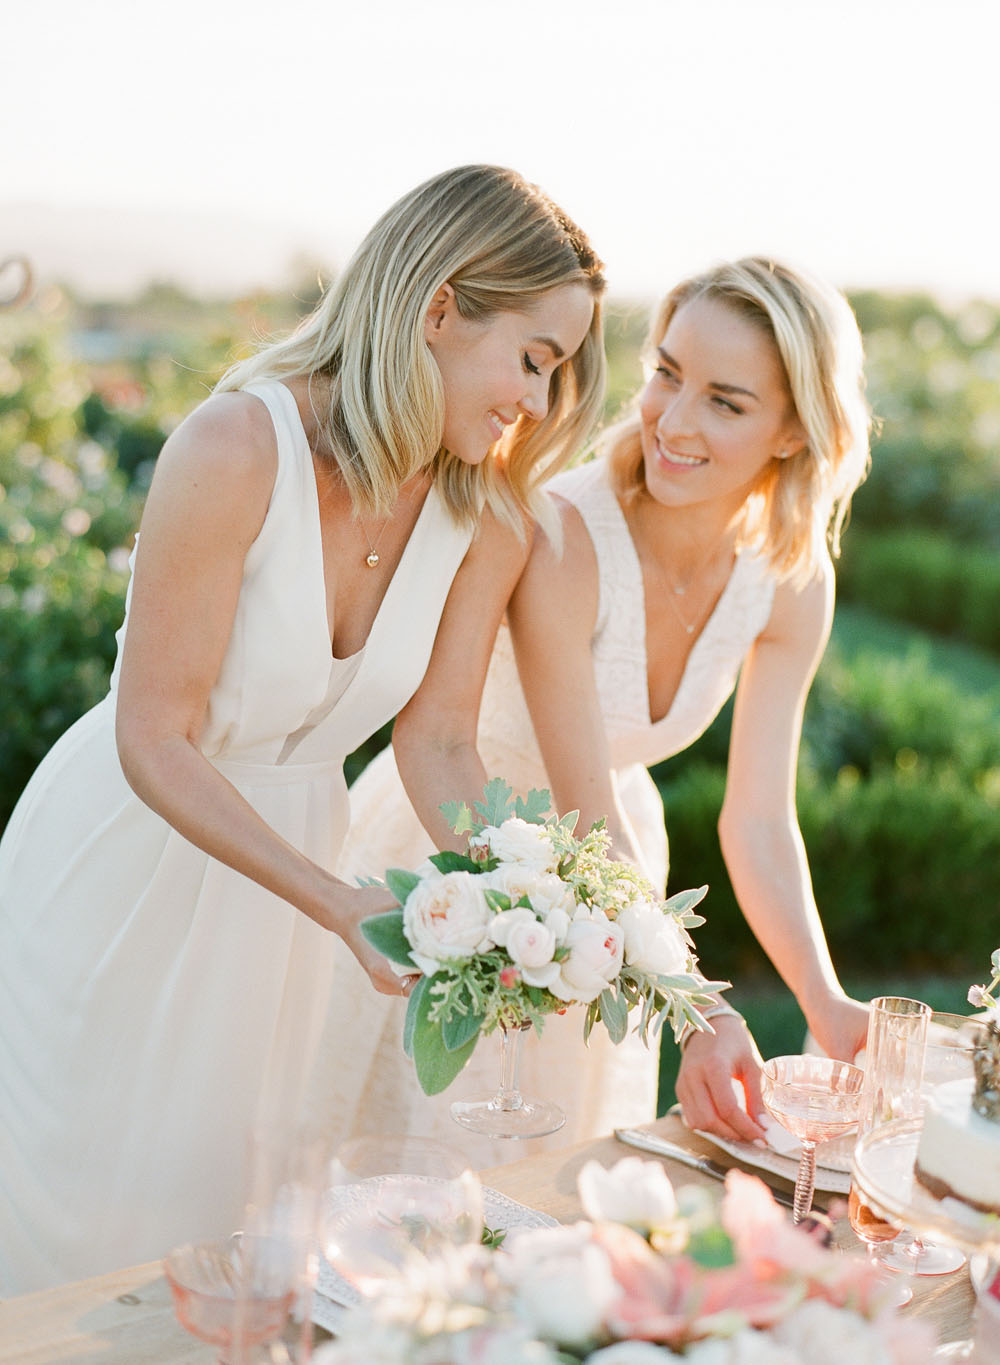 lauren conrad wedding - HD 1000×1365